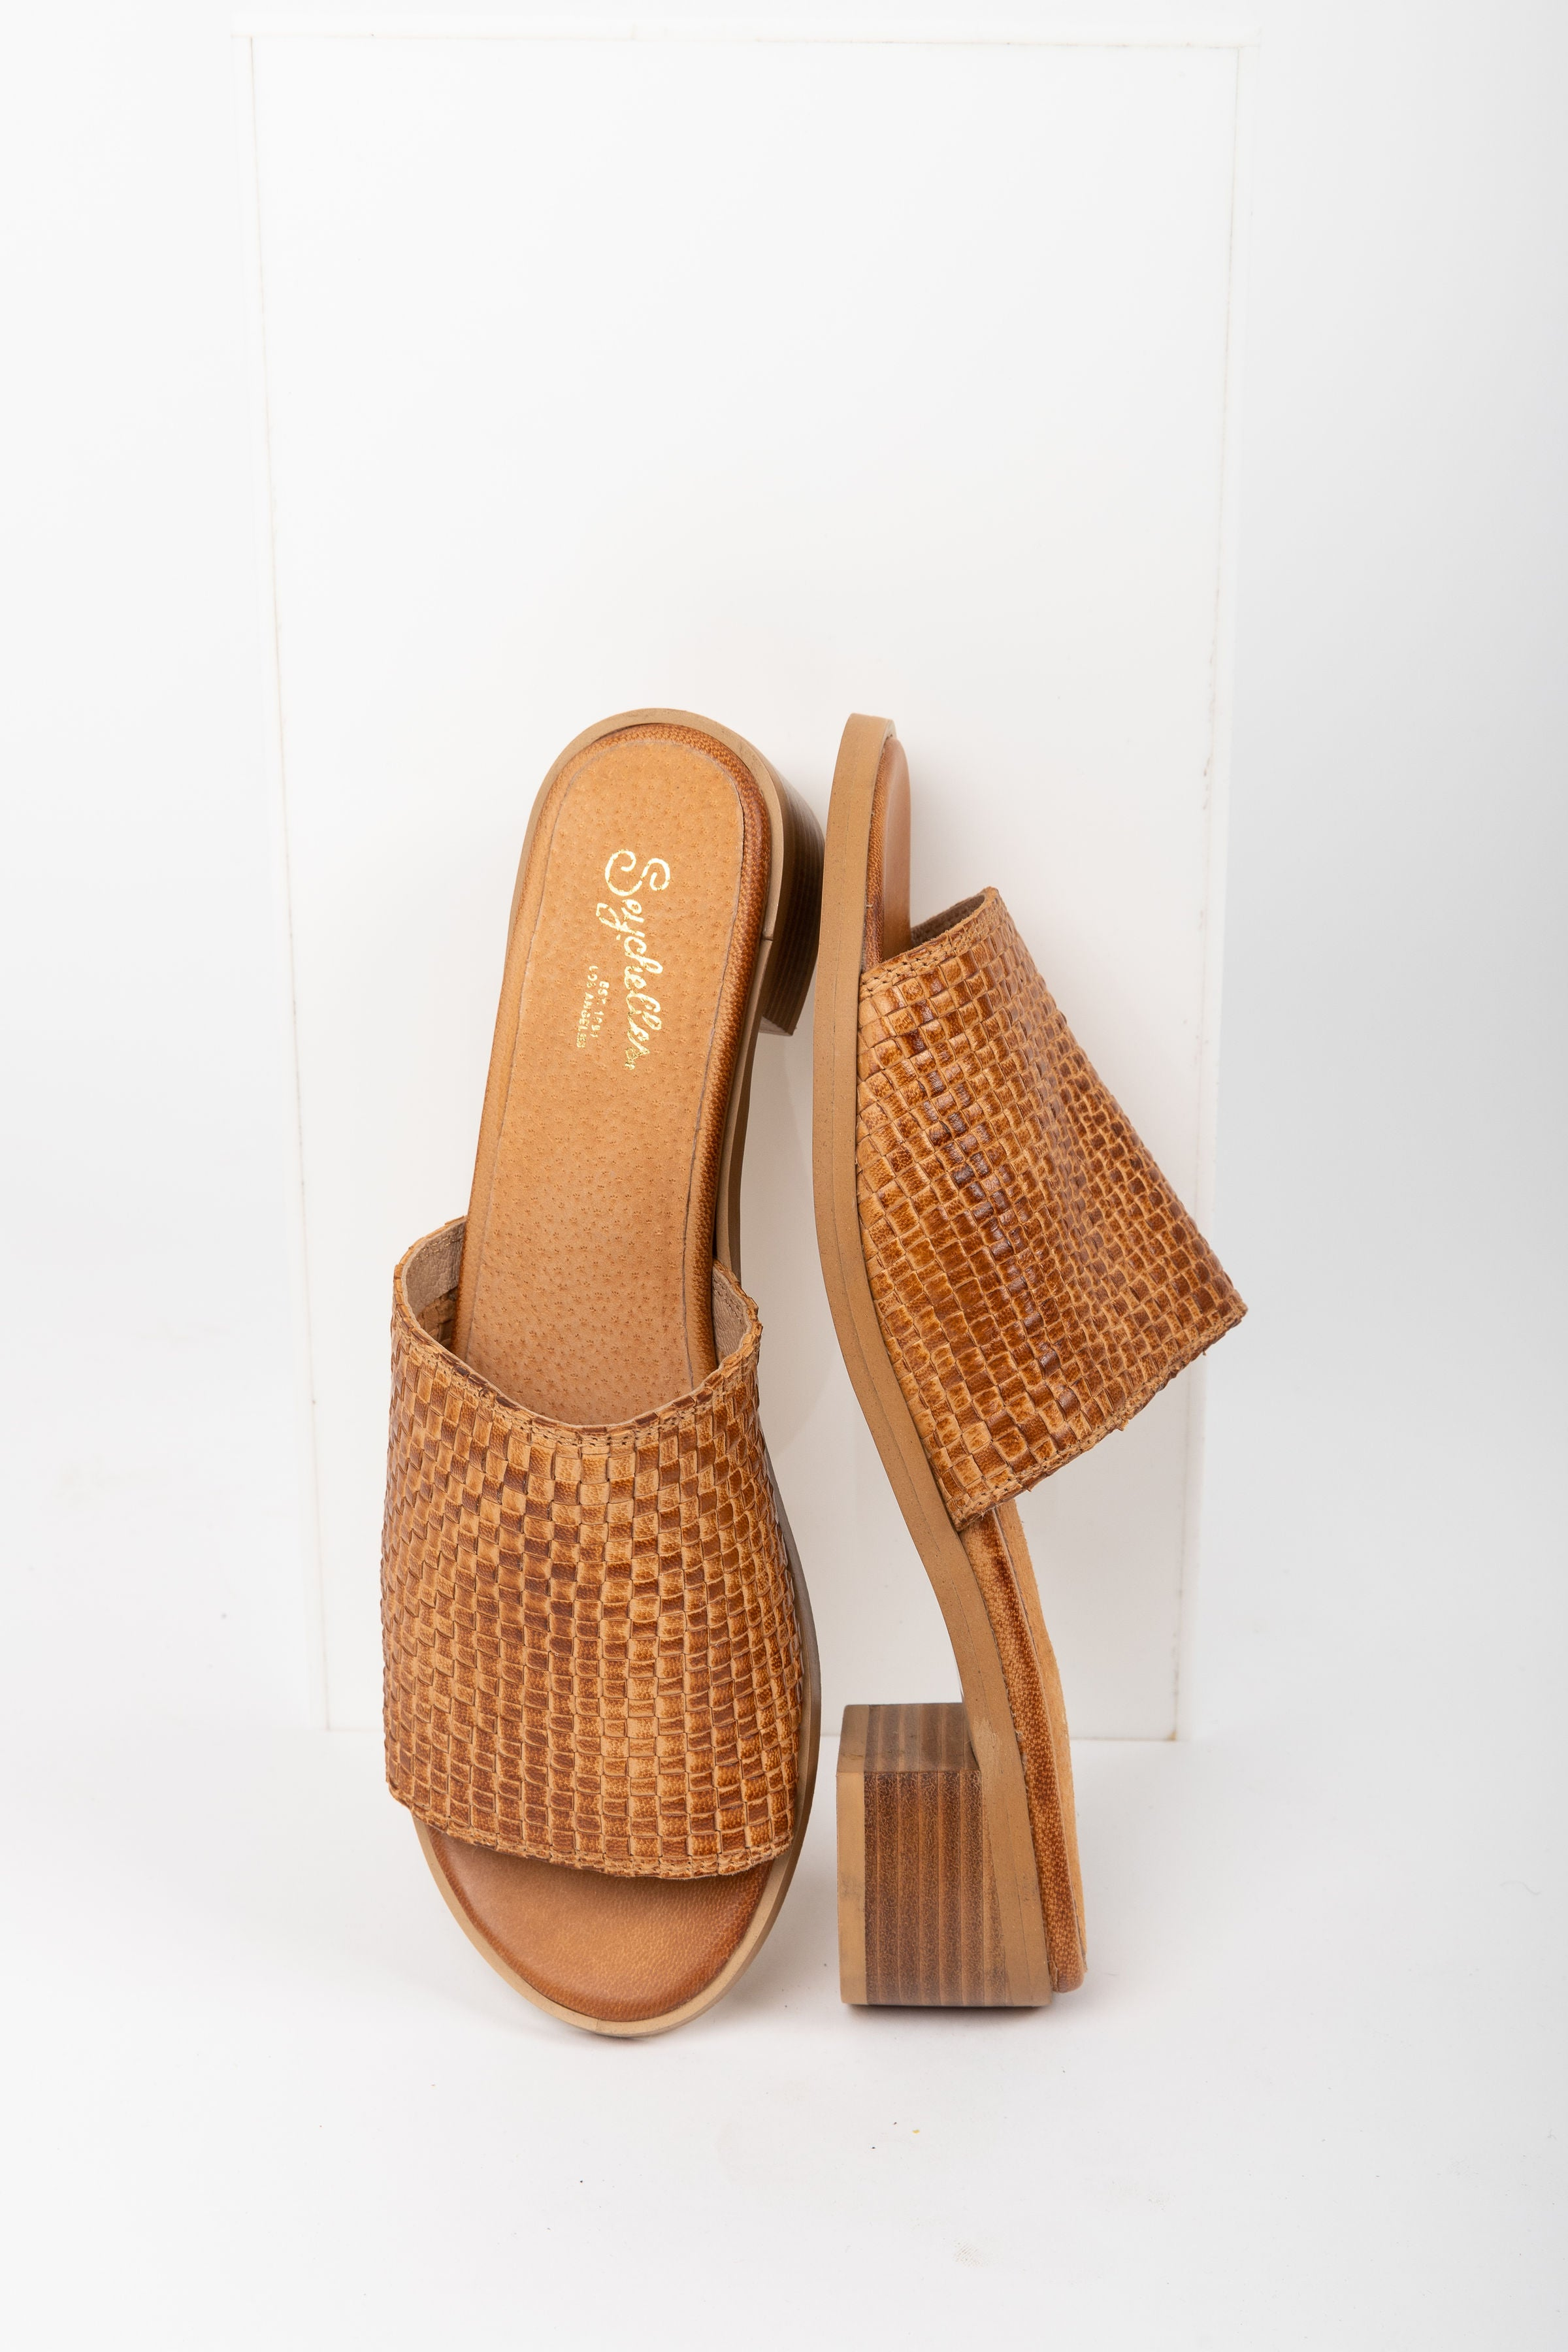 Seychelles: Hard to Find Mule Sandal in Tan Leather